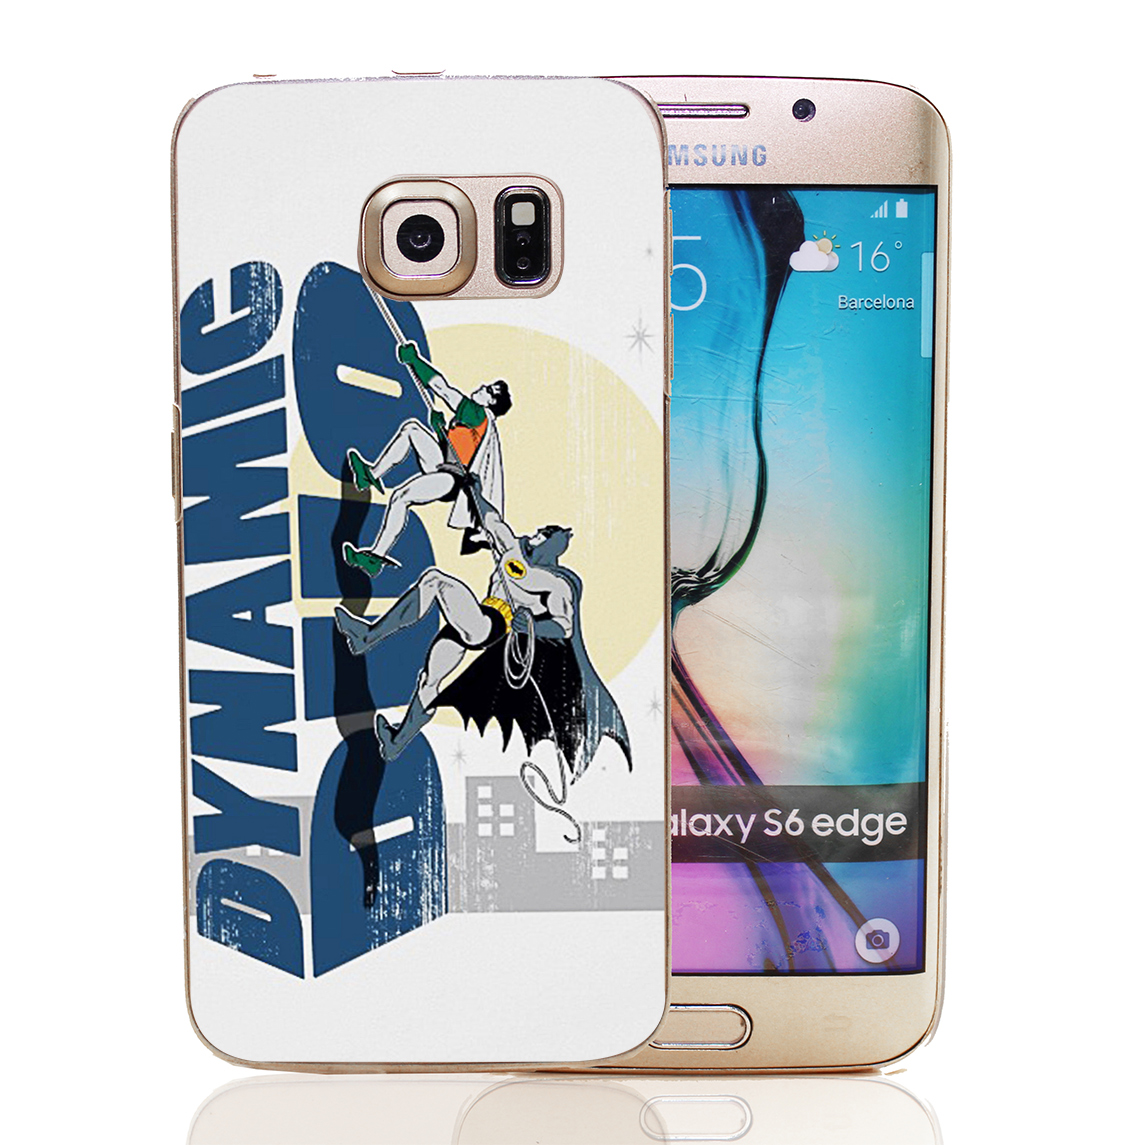 dynamic duo Style Transparent Hard Back Cover for Samsung Galaxy S3 S4 S4 S5 Mini S6 S7 Edge(China (Mainland))